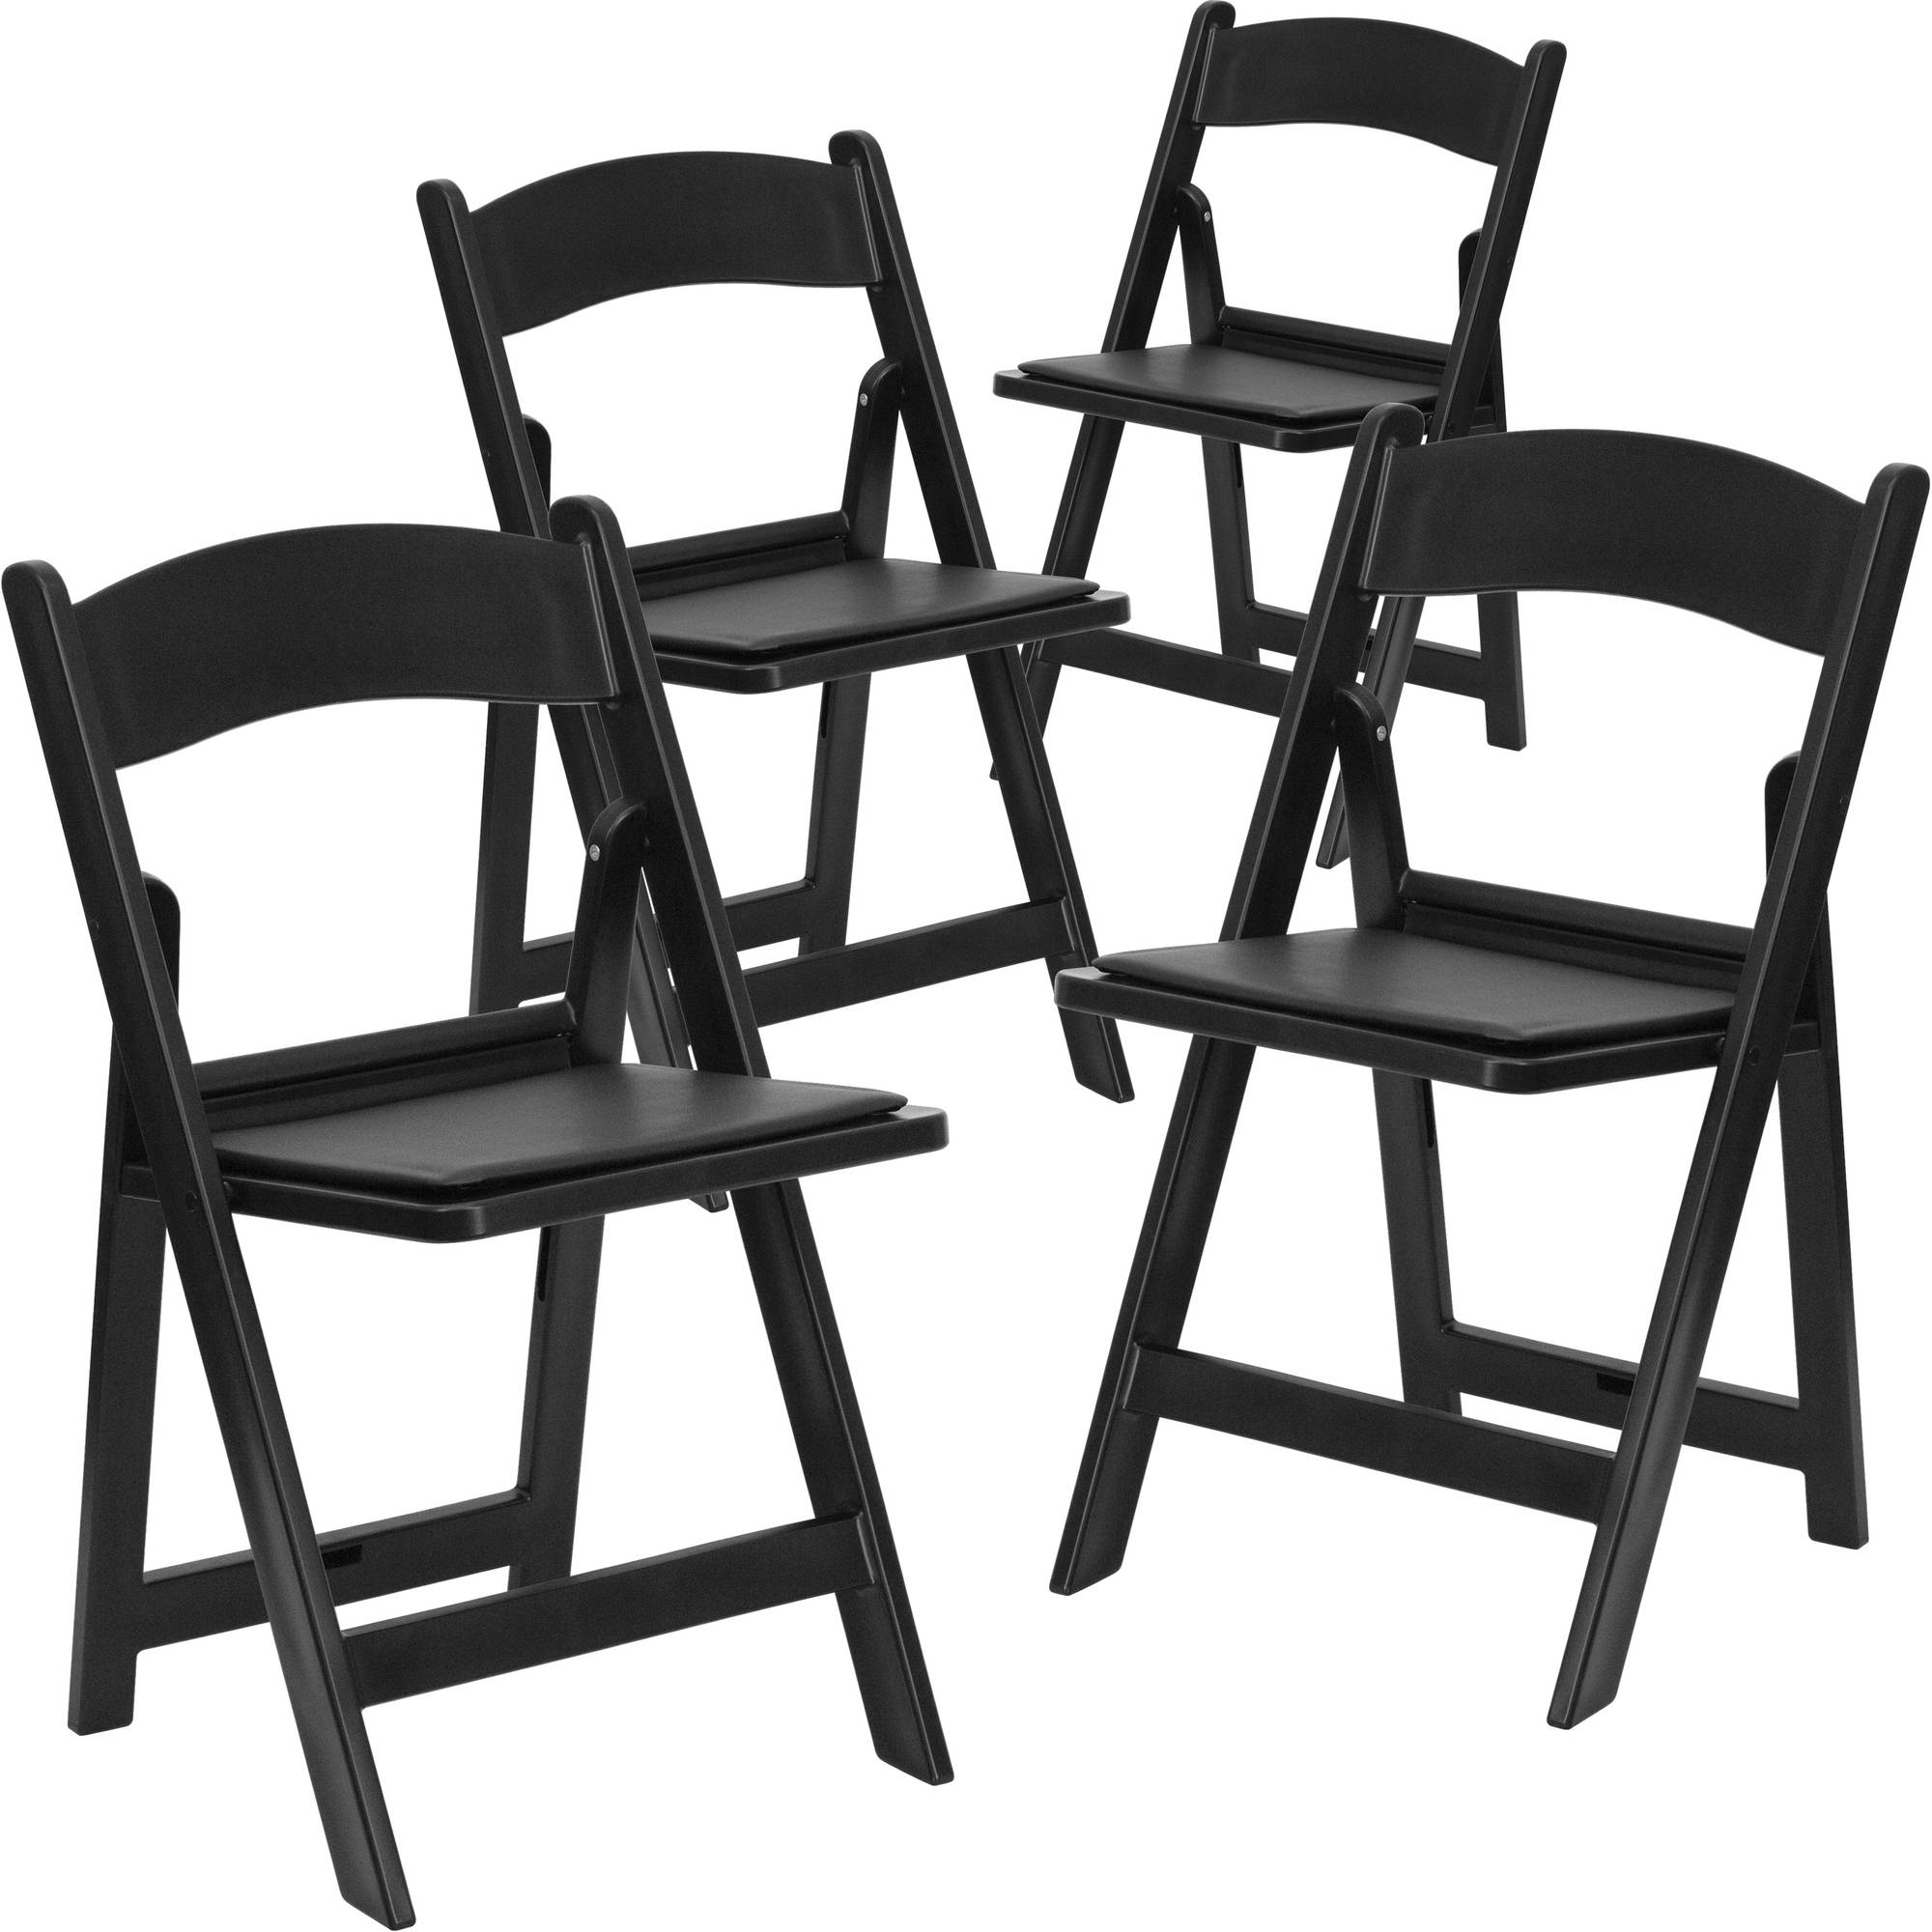 Flash Furniture 4 Pk. HERCULES Series 1000 lb. Capacity Resin Folding Chair with Seat Multiple Colors